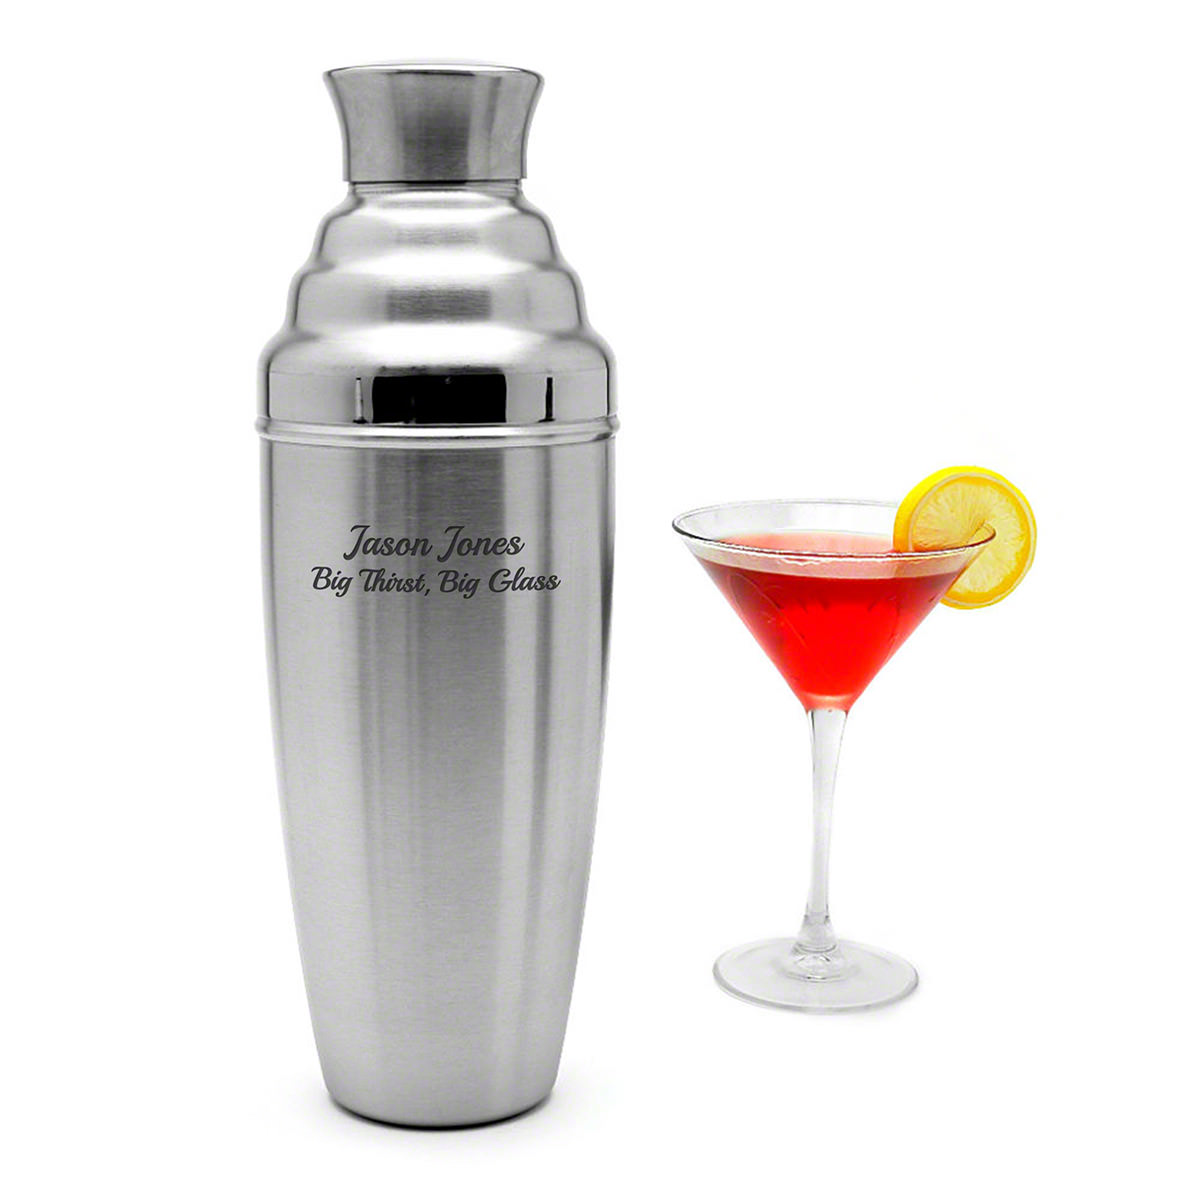 Extra-Large-Personalized-Cocktail-Shaker